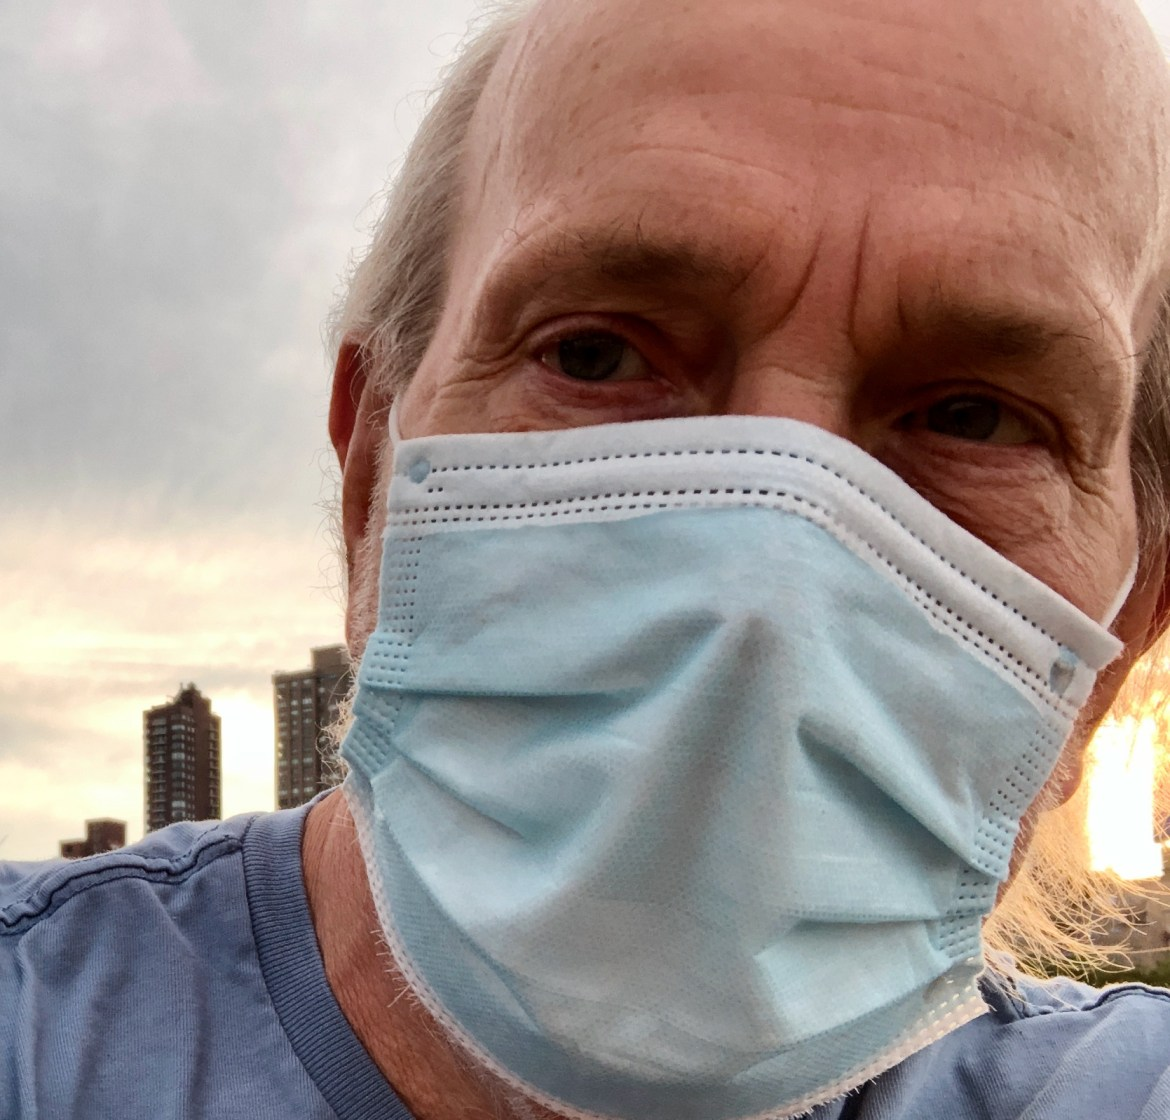 To mask or not to mask? That is the Roosevelt Island question…